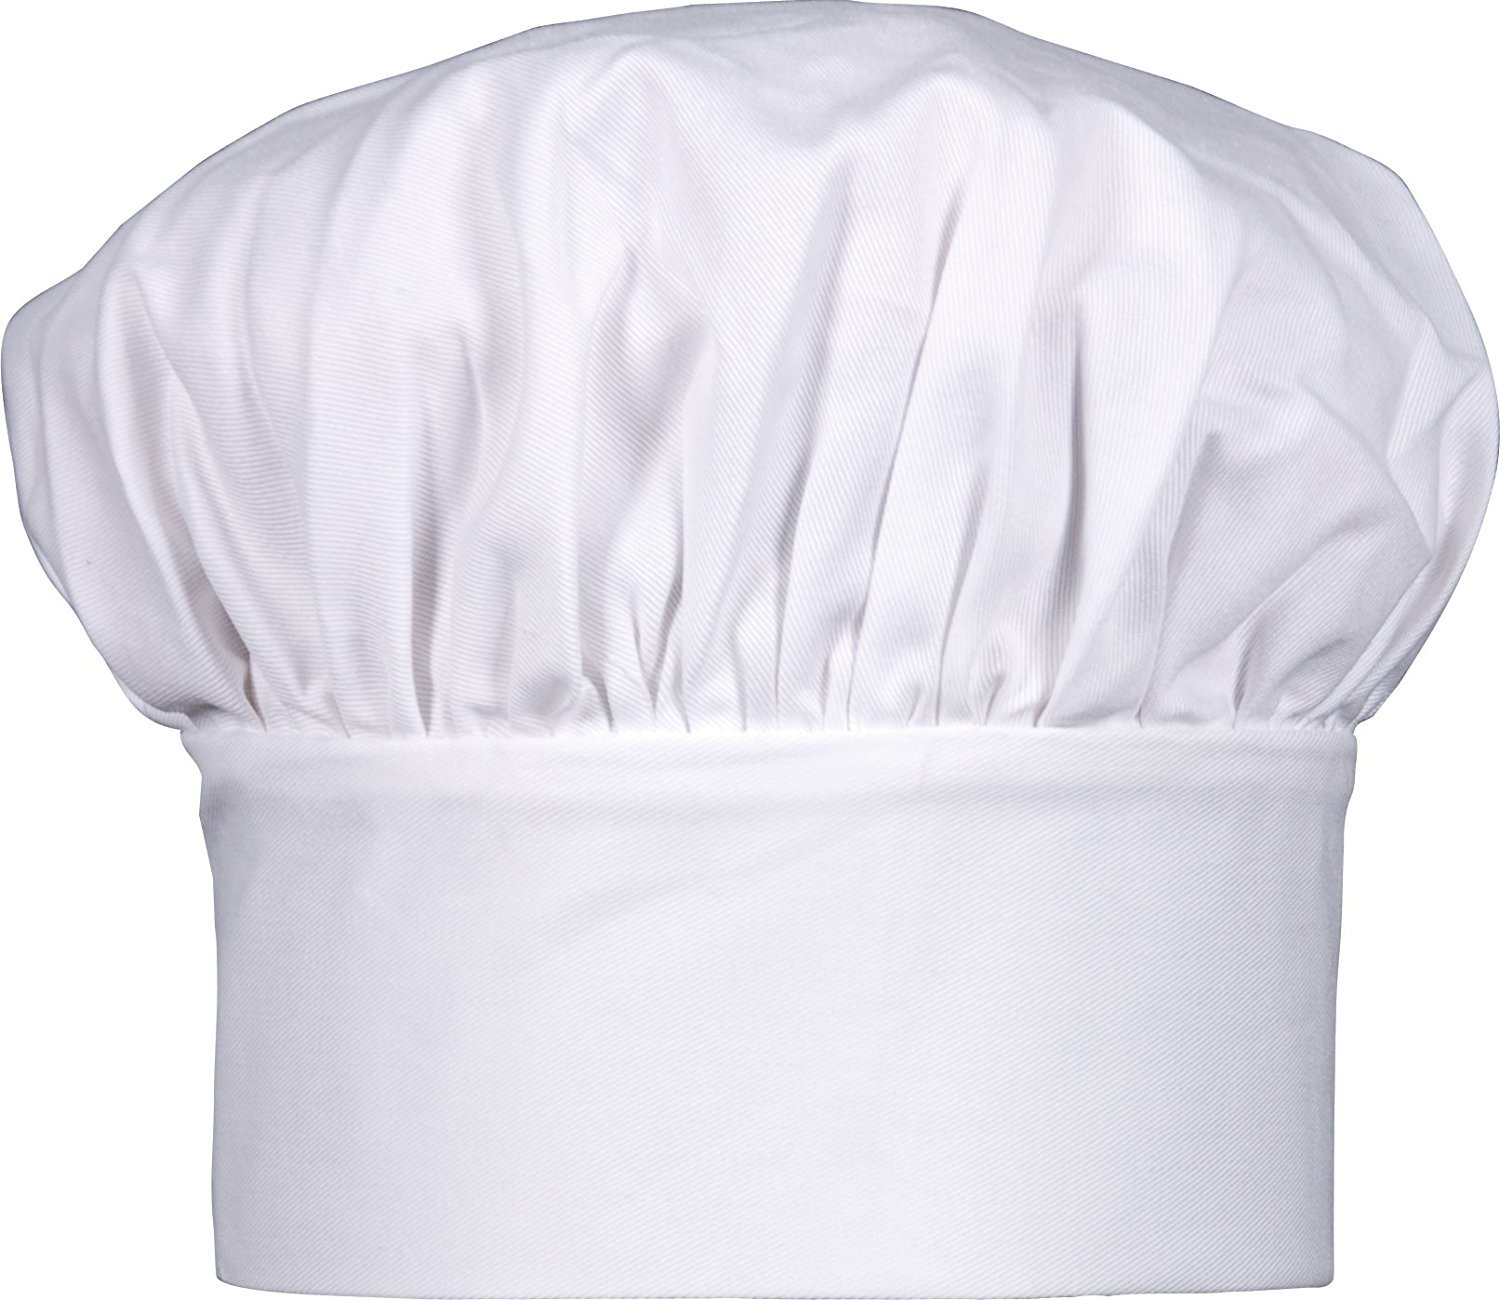 Gourmet Classics Adult Size Adjustable Chef Hat HIC Harold Import Co. 02300